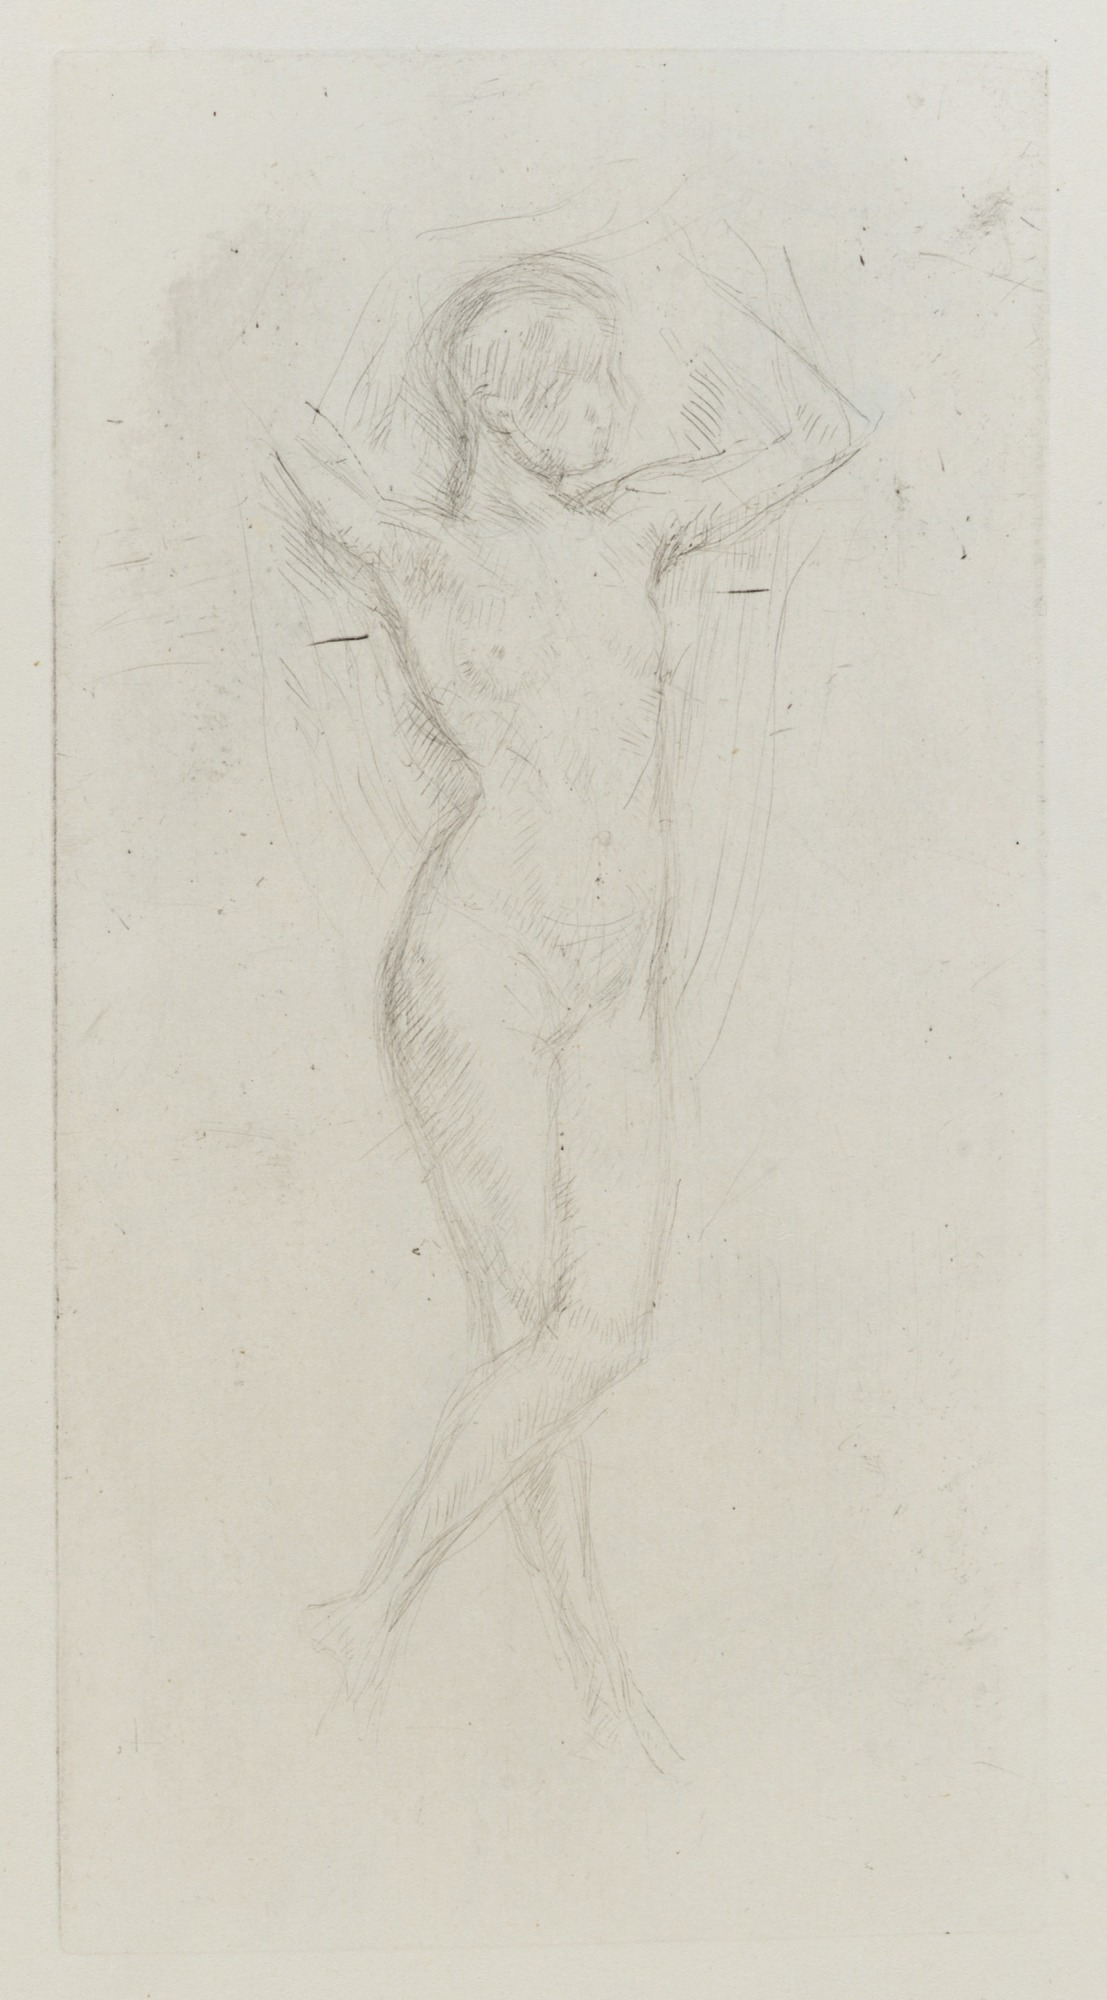 Nude Girl with Arms Raised